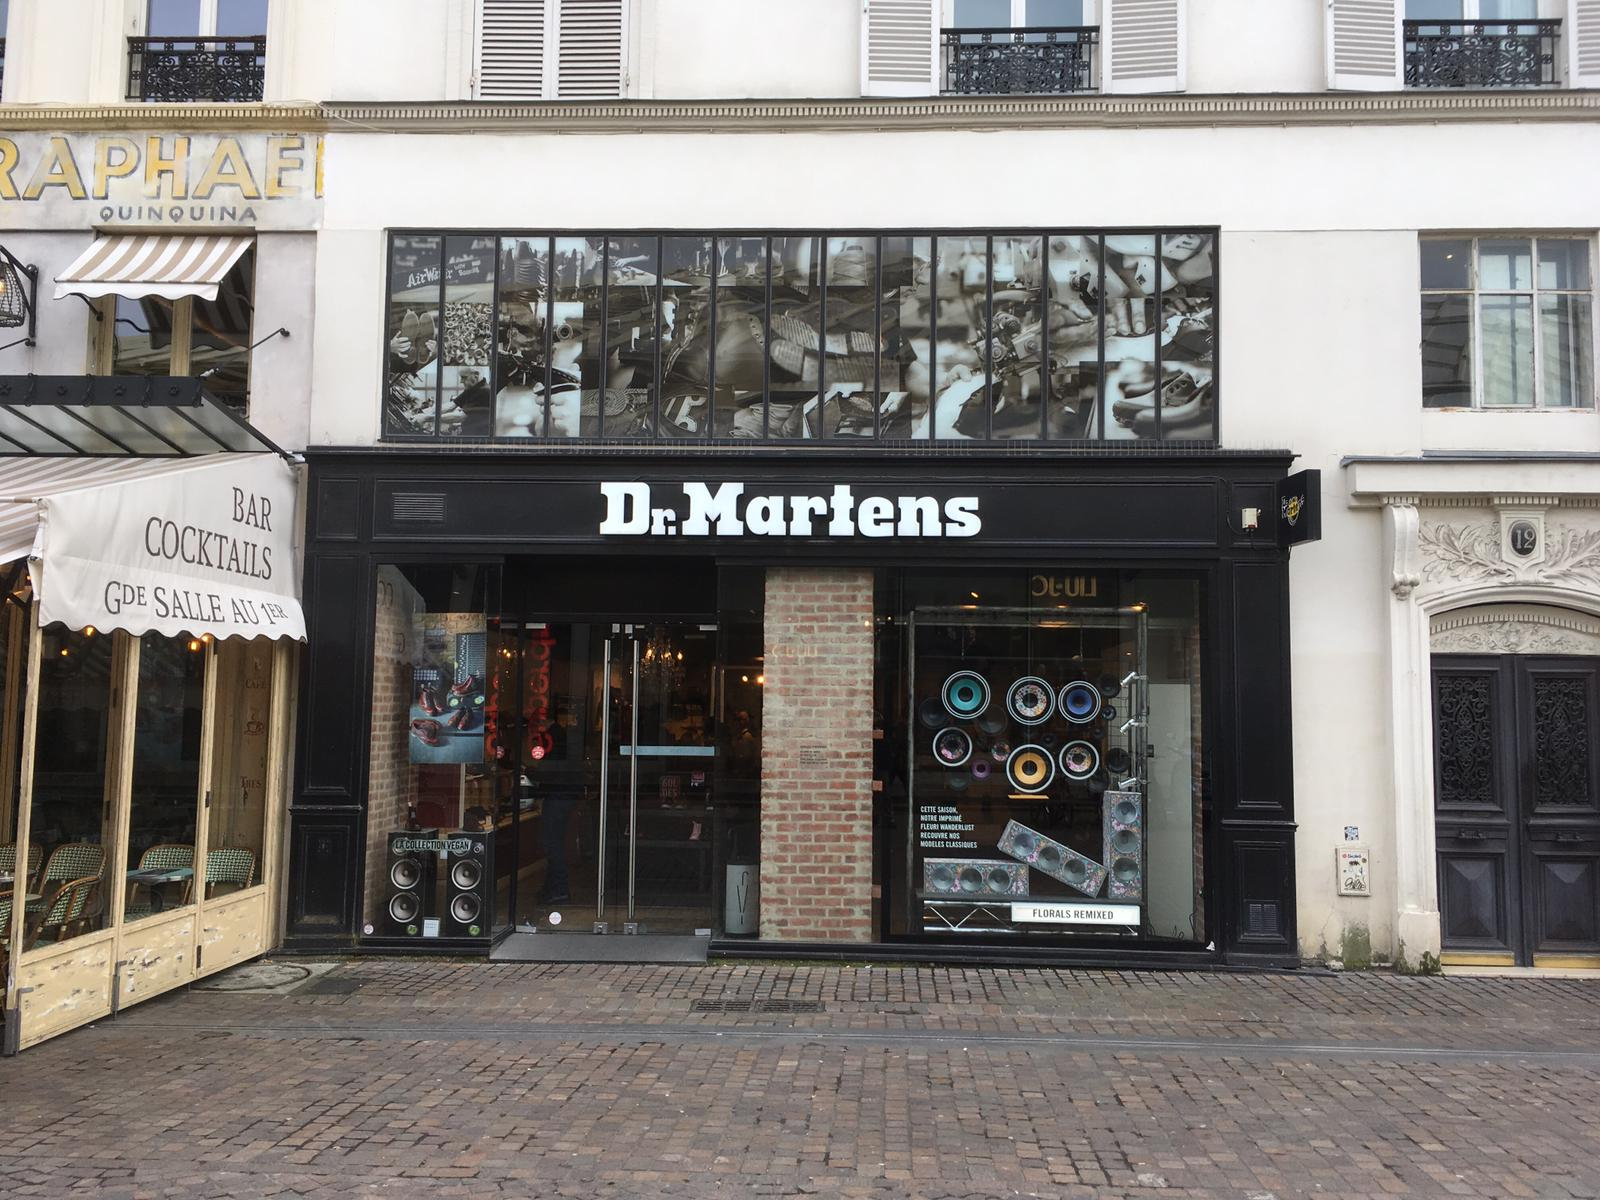 Doc Martens Signage store front in France